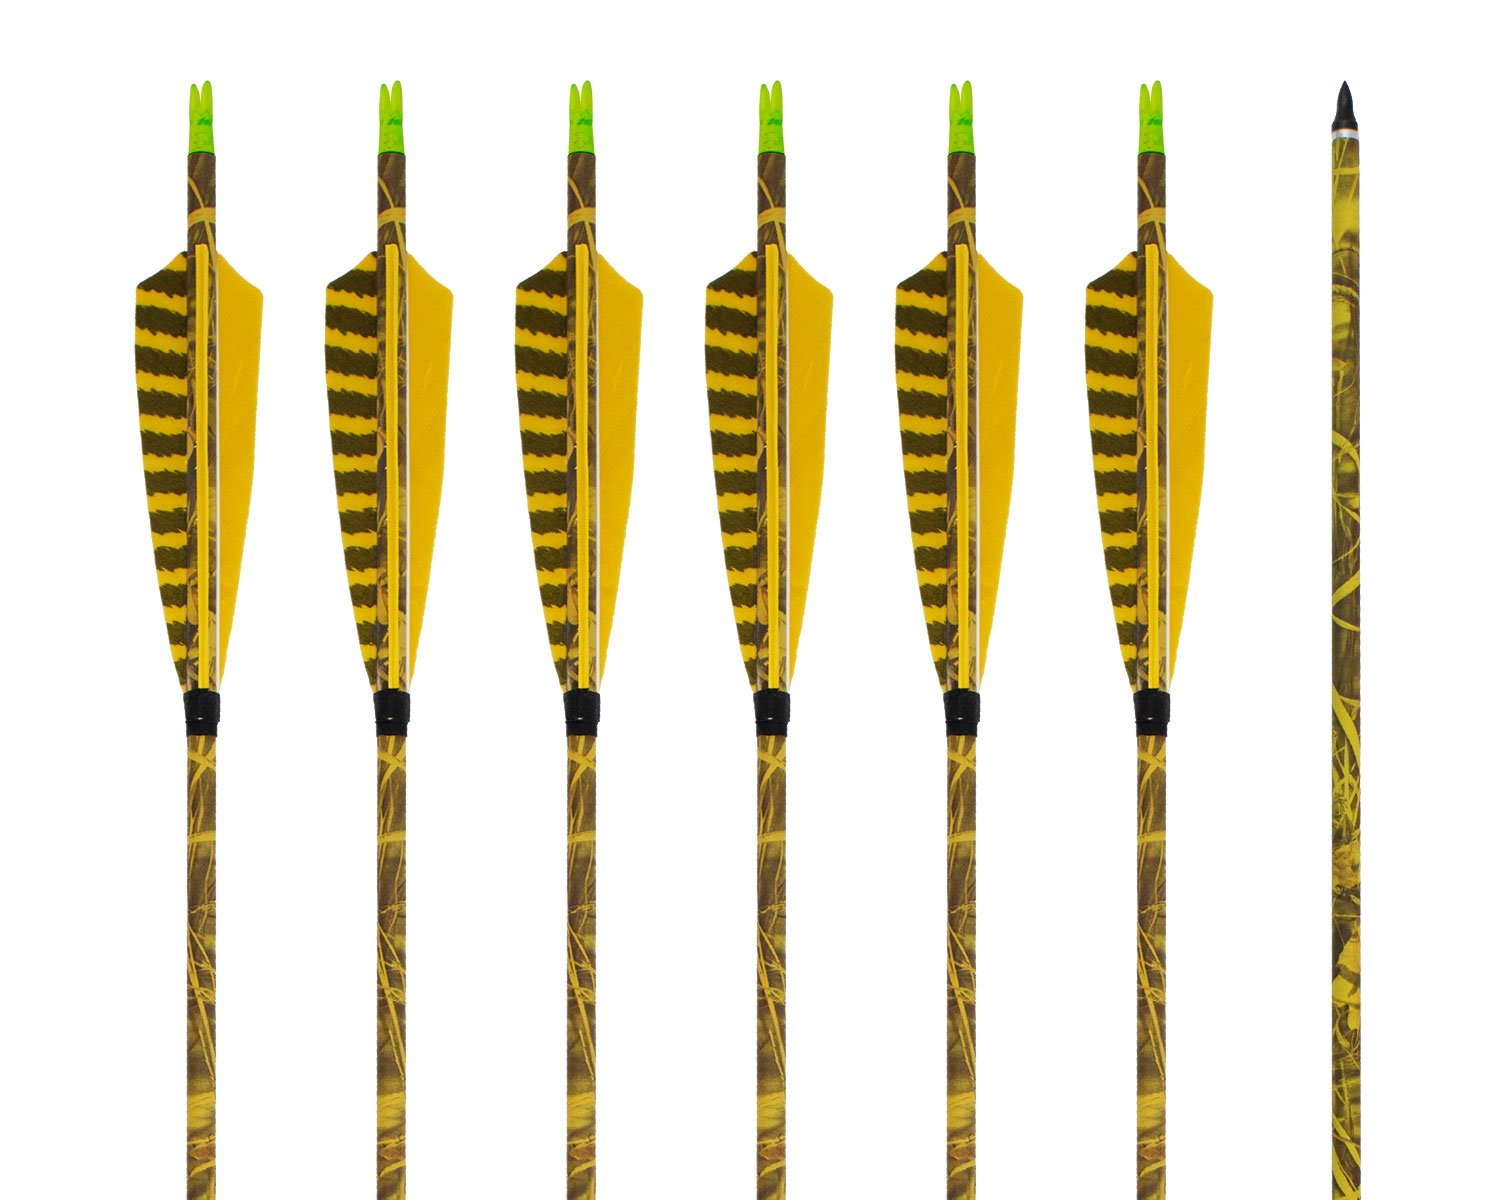 ARCHERY SHARLY [6 Pack] 31Inch Carbon Arrow Practice Hunting Arrows with 5'' Camo Natural Feathers for Traditional Recurve Bow and Longbow